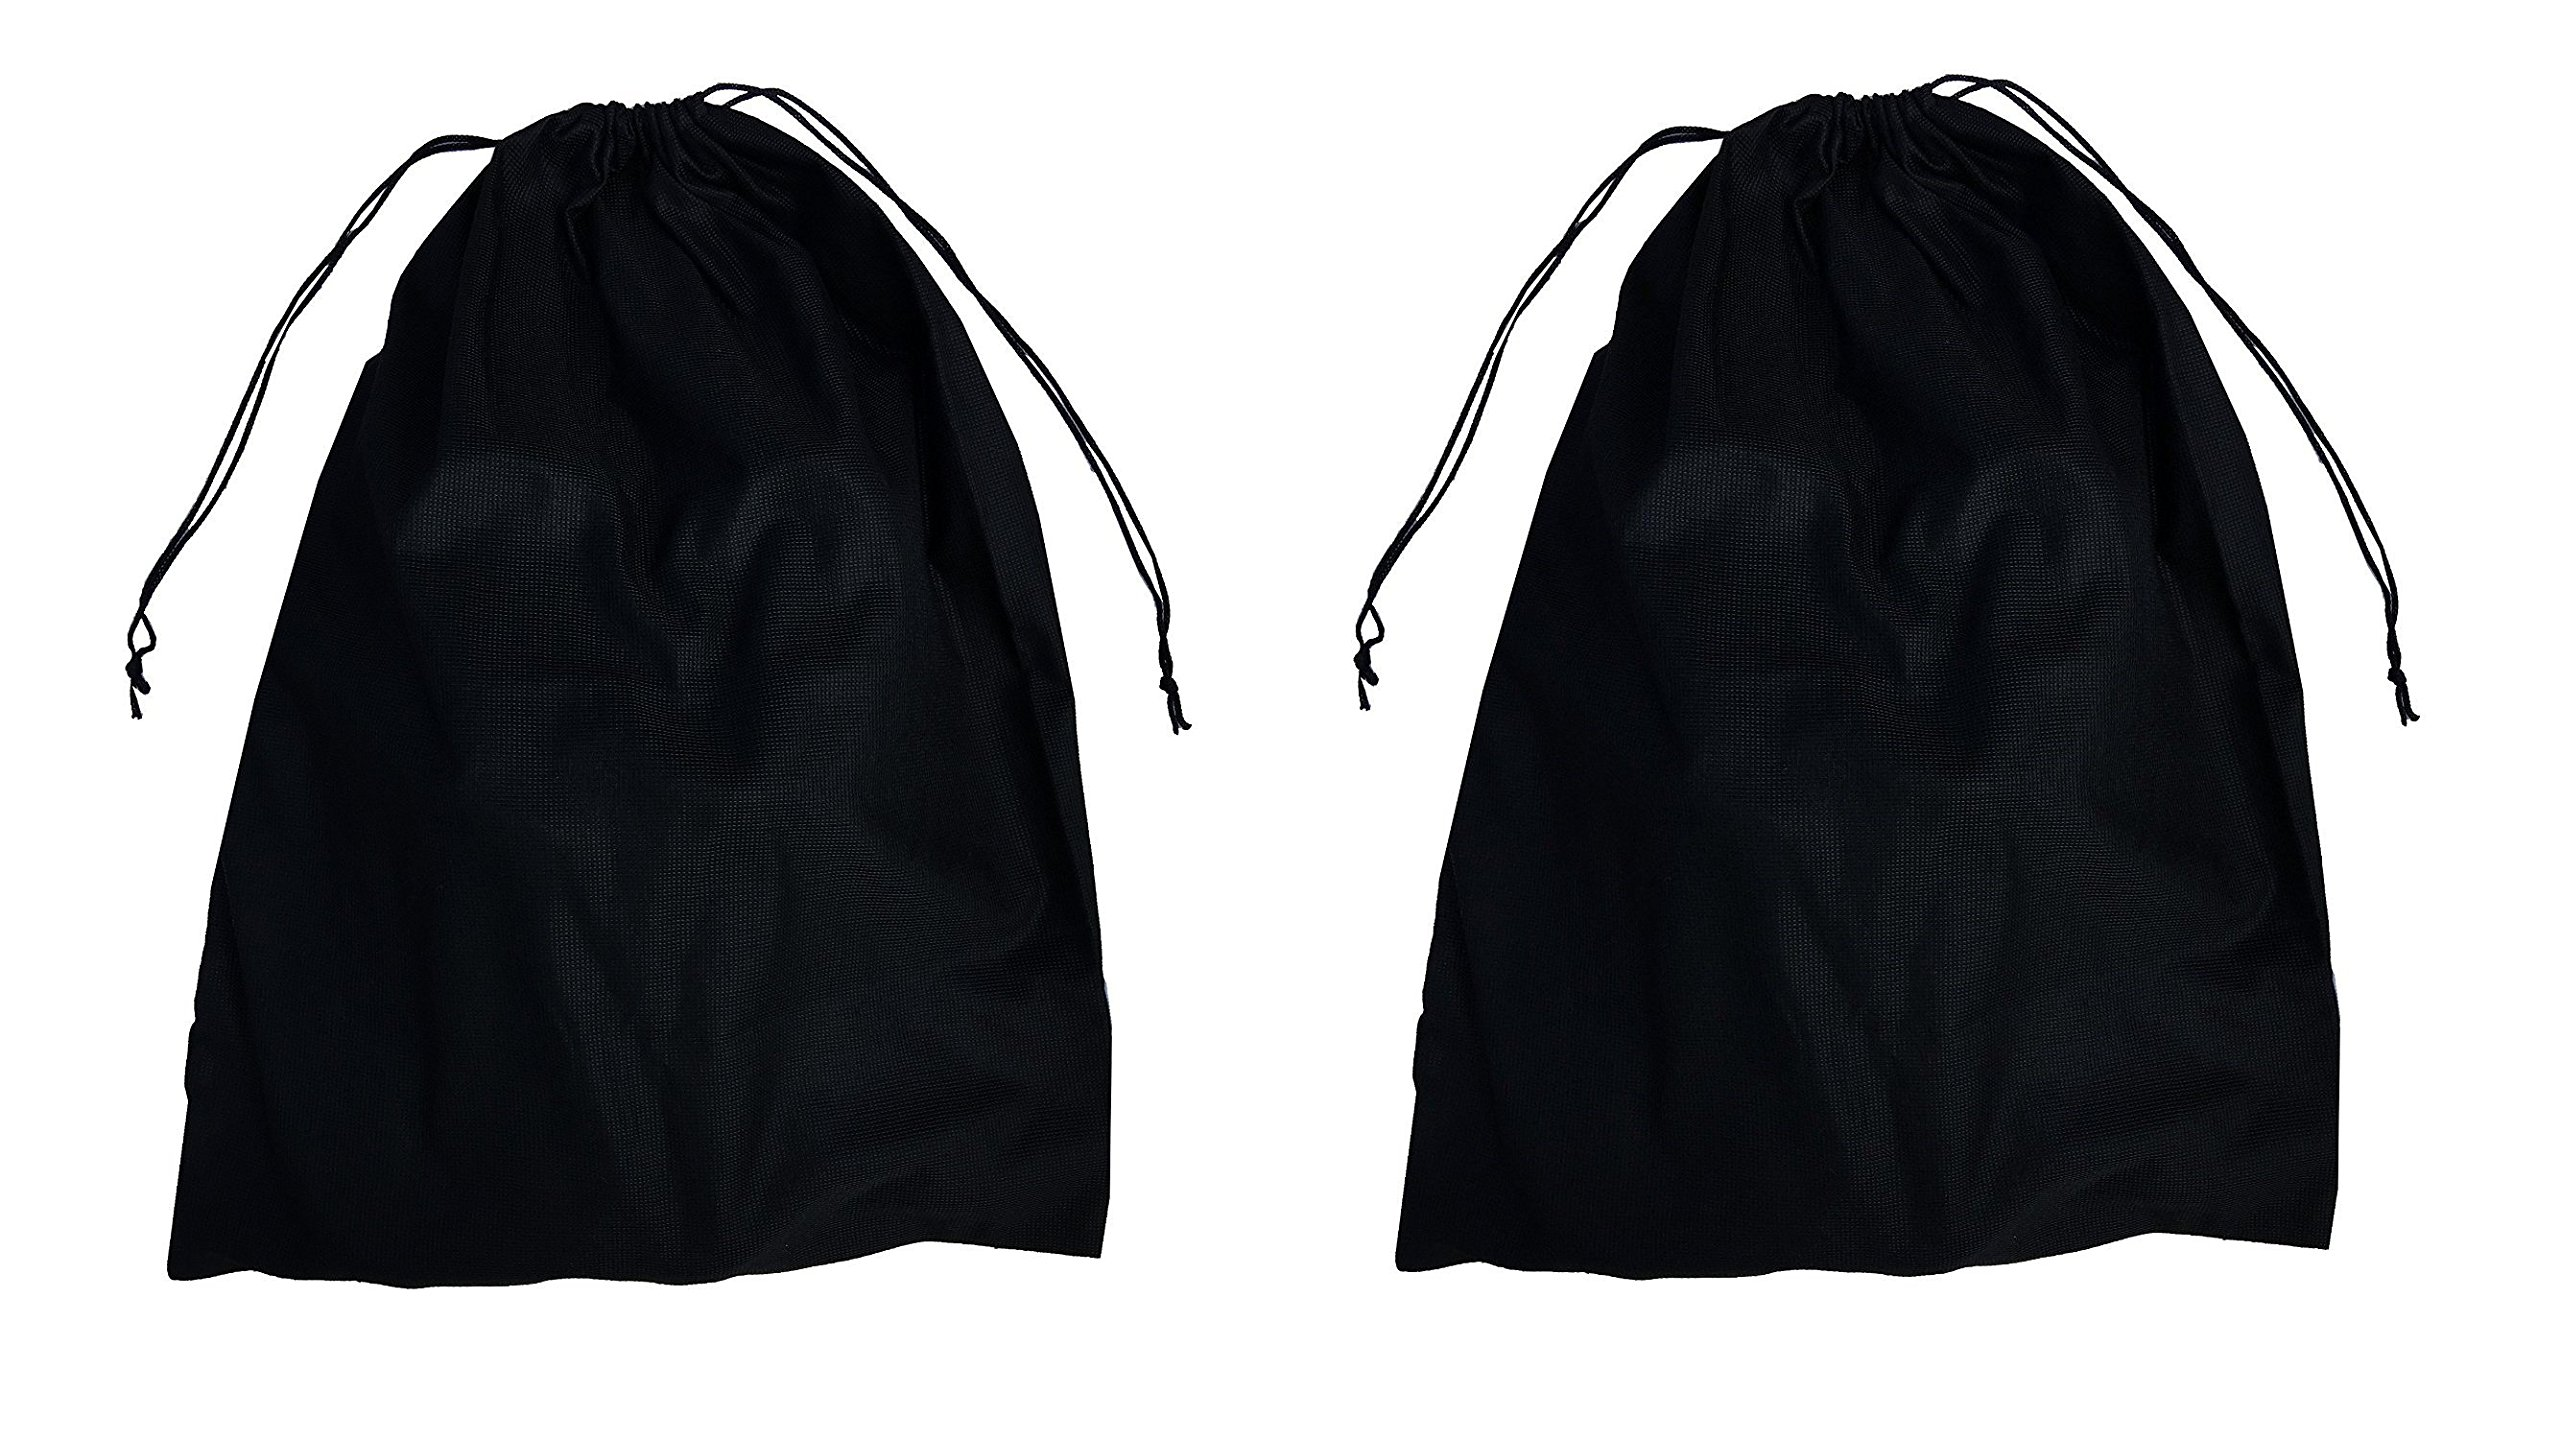 2 Woly XXL Shoe Bags (18''x 14'' in.) Fits 2 Pairs of Shoes Per Bag. Good for Travel. Made in Germany. by Woly (Image #1)